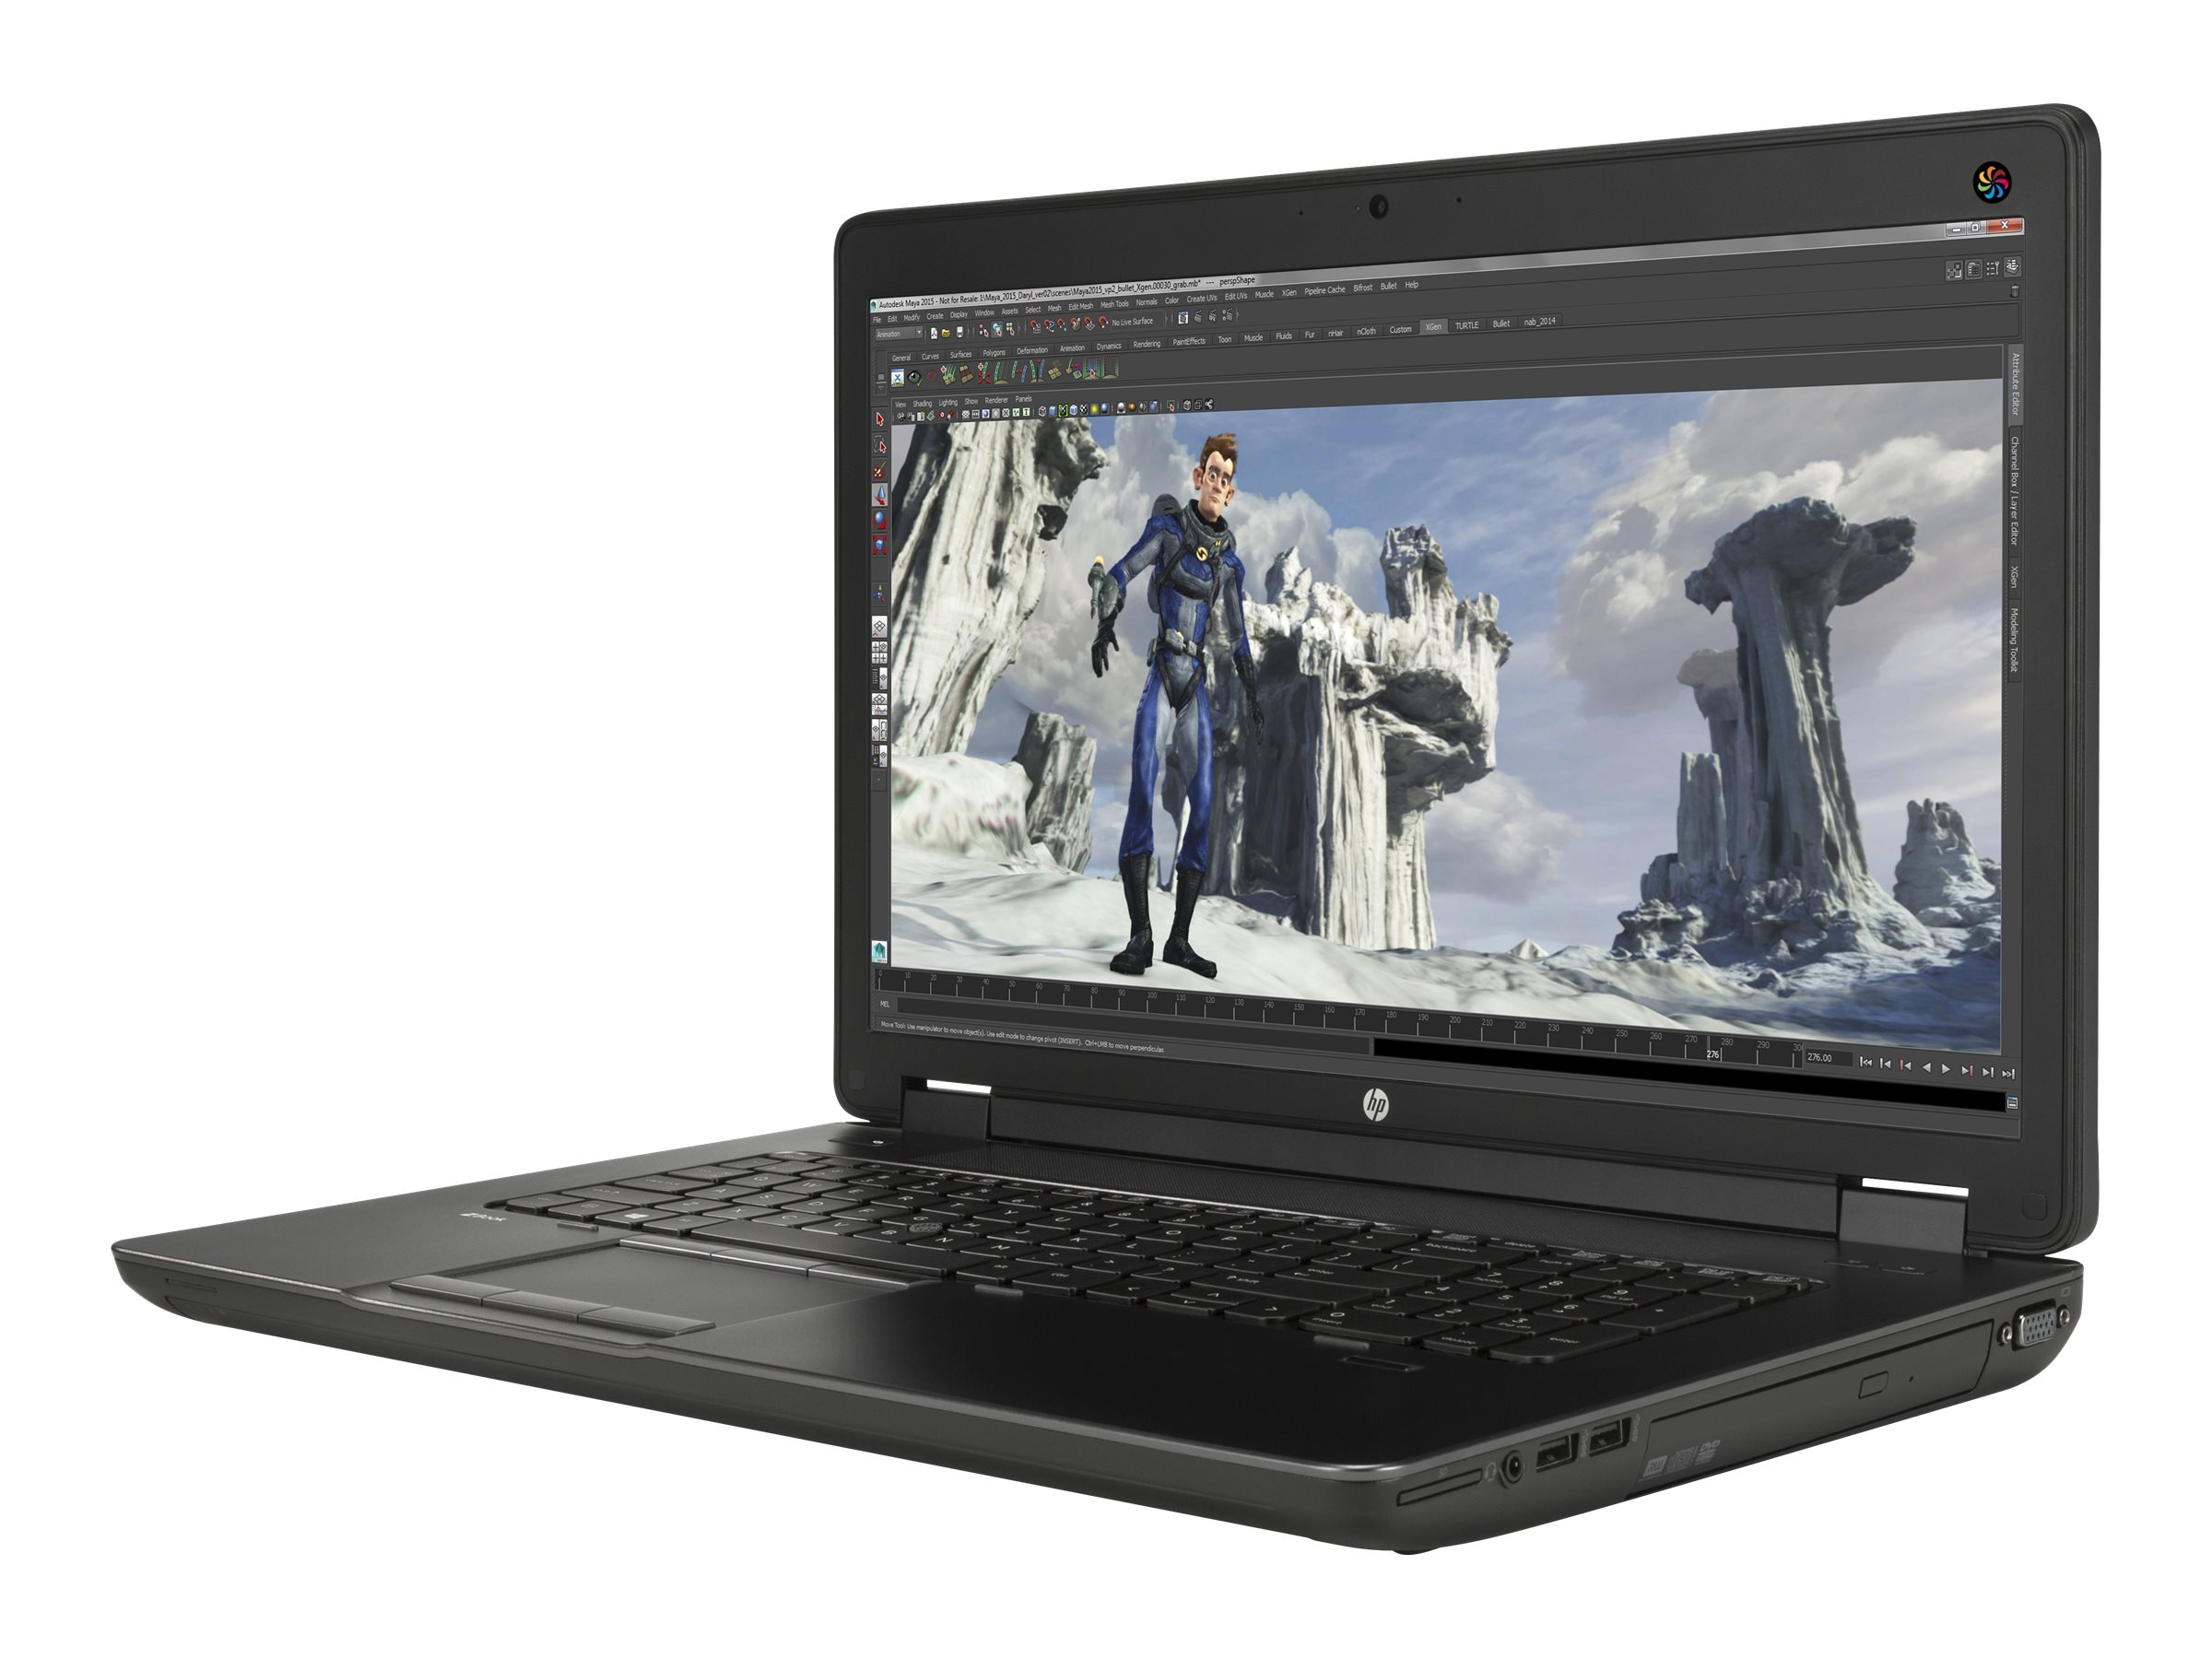 HP ZBook 17 Core i7-4710MQ 2.5GHz 16GB 512GB DVD SM ac BT FR K2200M 8C 17.3 FHD W7P64-W10P, P3D85UT#ABA, 30677506, Workstations - Mobile